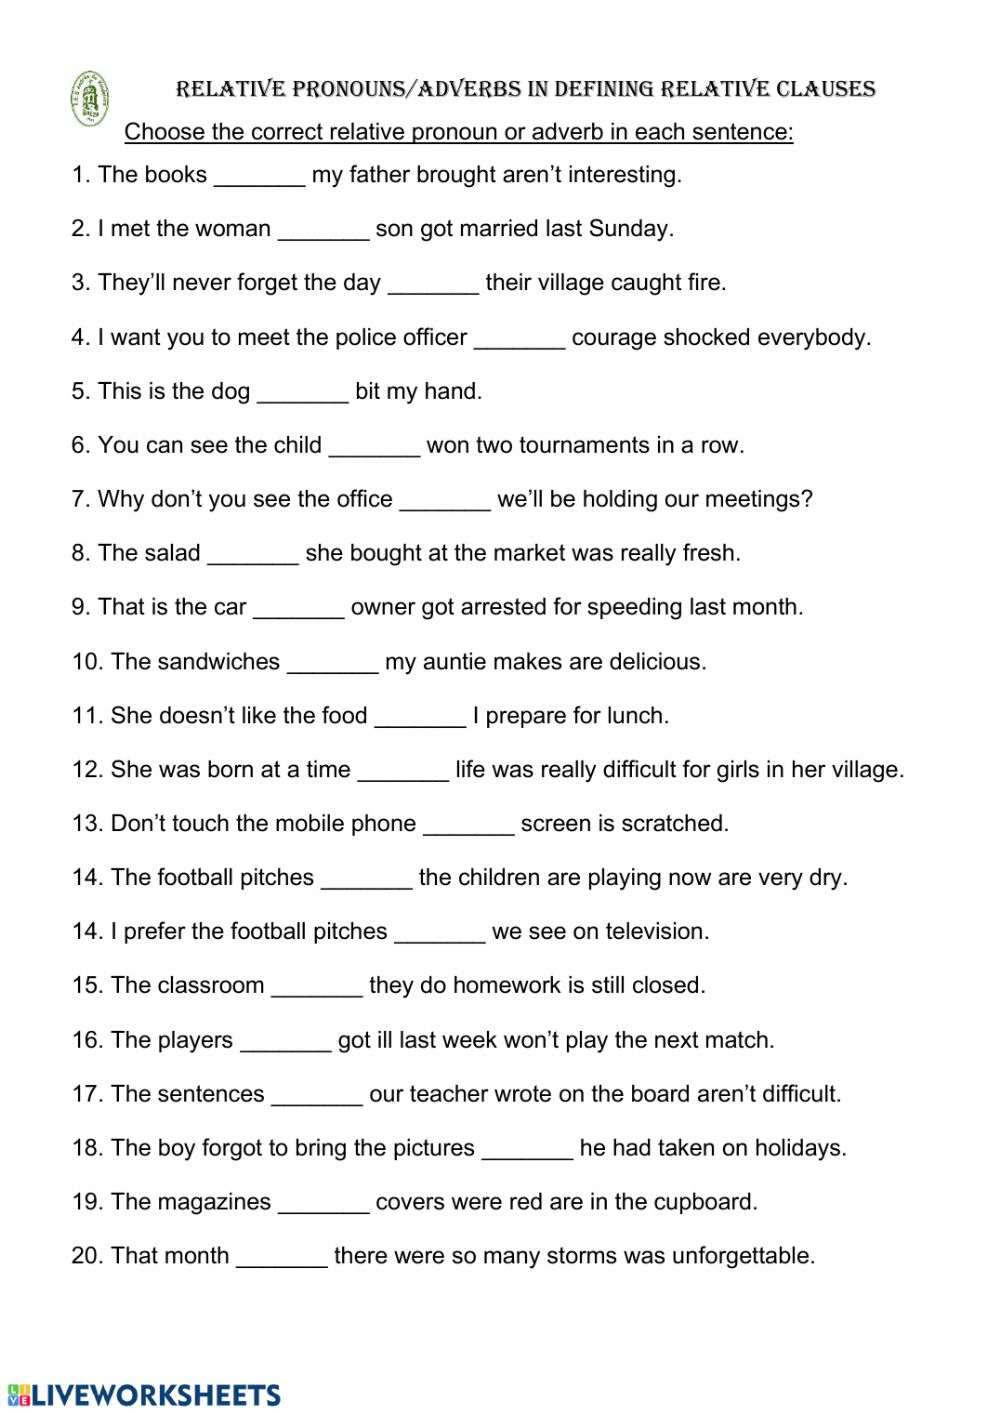 hight resolution of Relative pronouns - adverbs worksheet